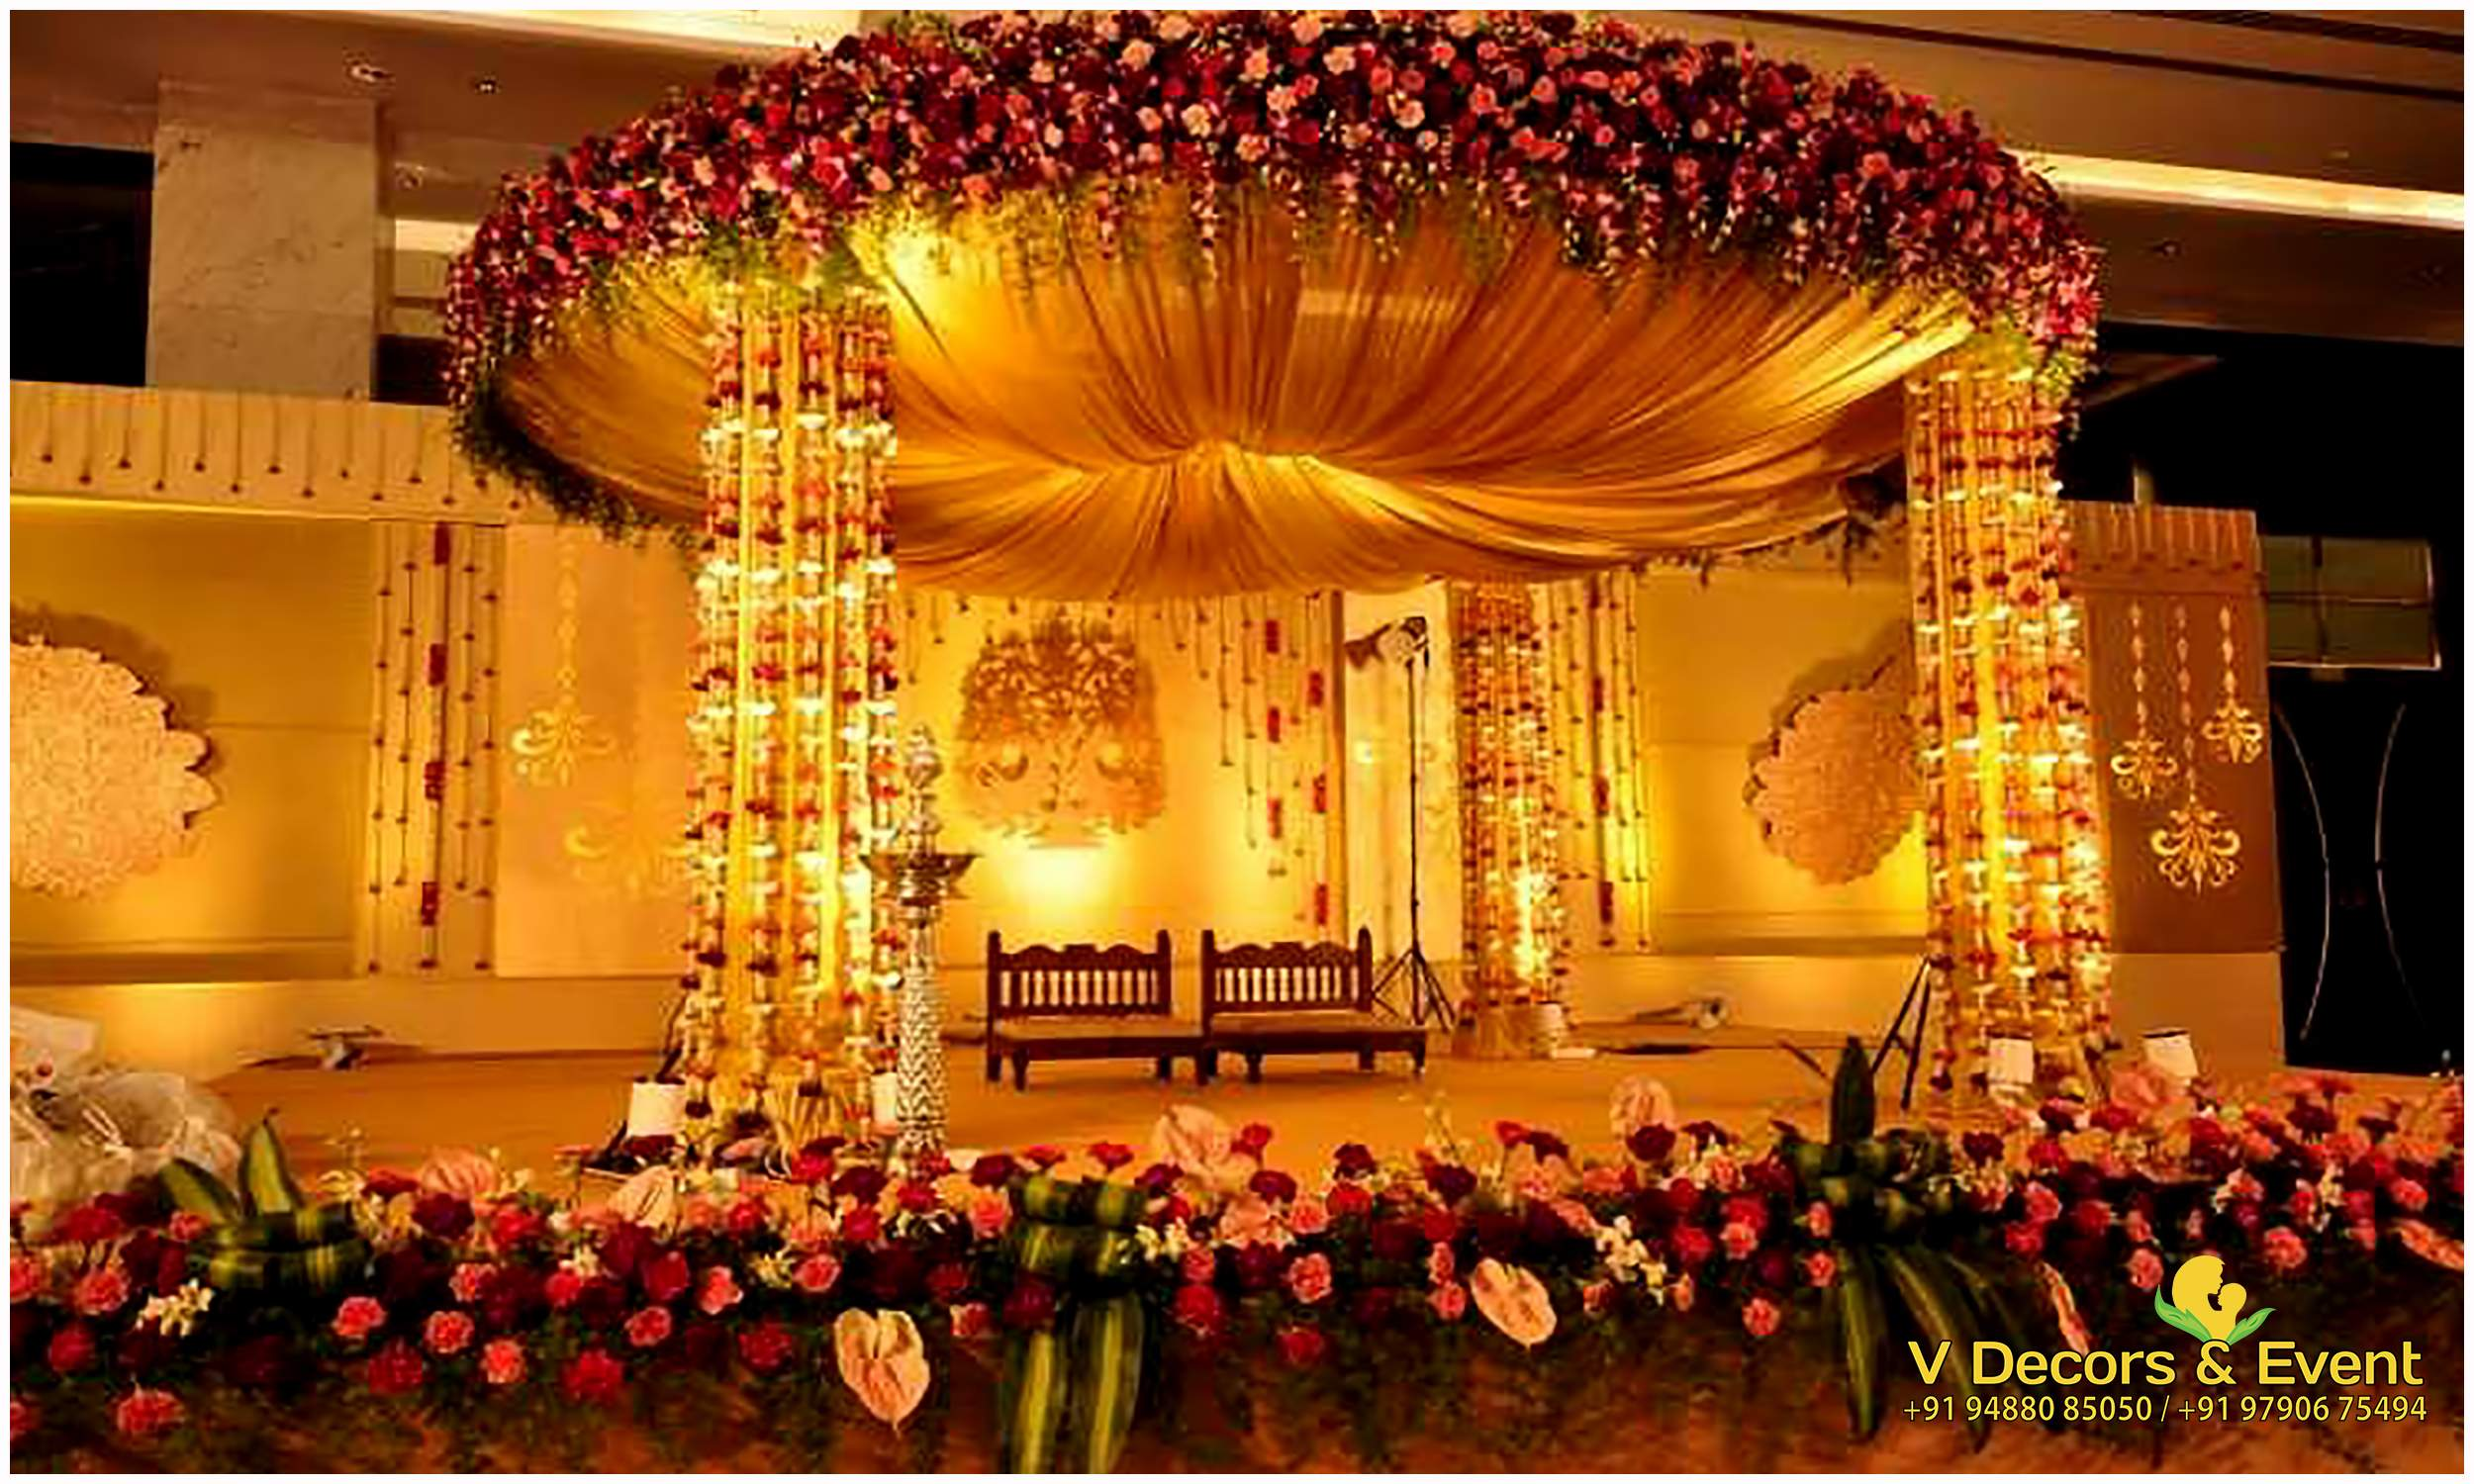 V decors and events wedding planners in pondicherry for Terrace party decoration